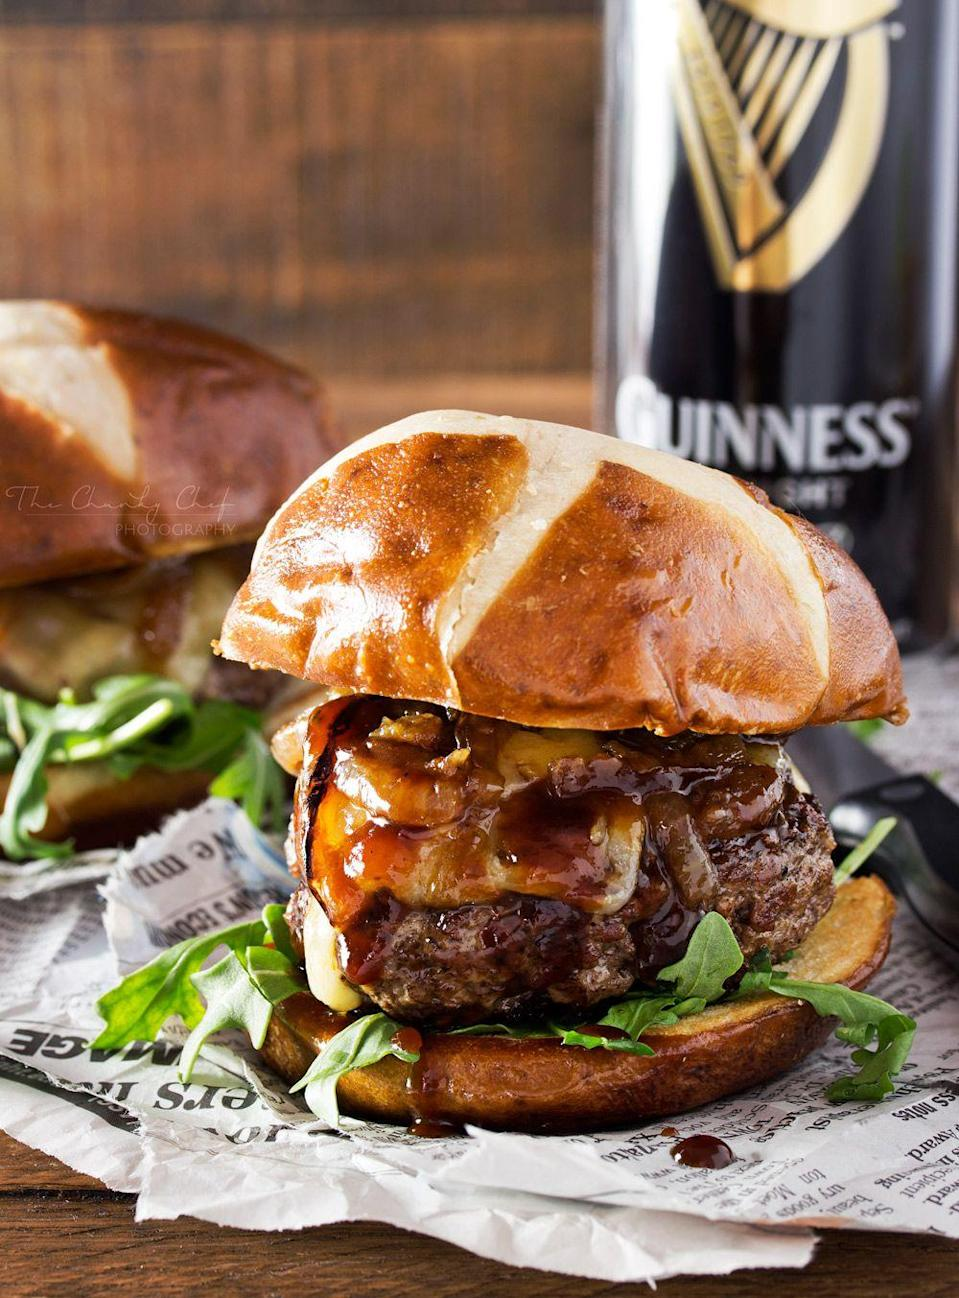 """<p>This mouthwatering, meaty main is topped with caramelized onions and lots of melted cheese. Yum!</p><p><strong>Get the recipe at <a href=""""http://www.thechunkychef.com/whiskey-glazed-blue-cheese-burgers/"""" rel=""""nofollow noopener"""" target=""""_blank"""" data-ylk=""""slk:The Chunky Chef"""" class=""""link rapid-noclick-resp"""">The Chunky Chef</a>.</strong> </p>"""